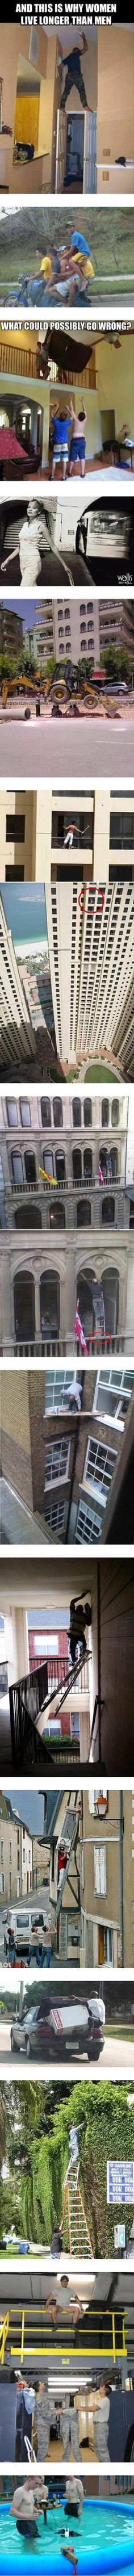 Reasons women live longer than men...when I saw the guy on the window and realized how far up he was I jumped a little bit